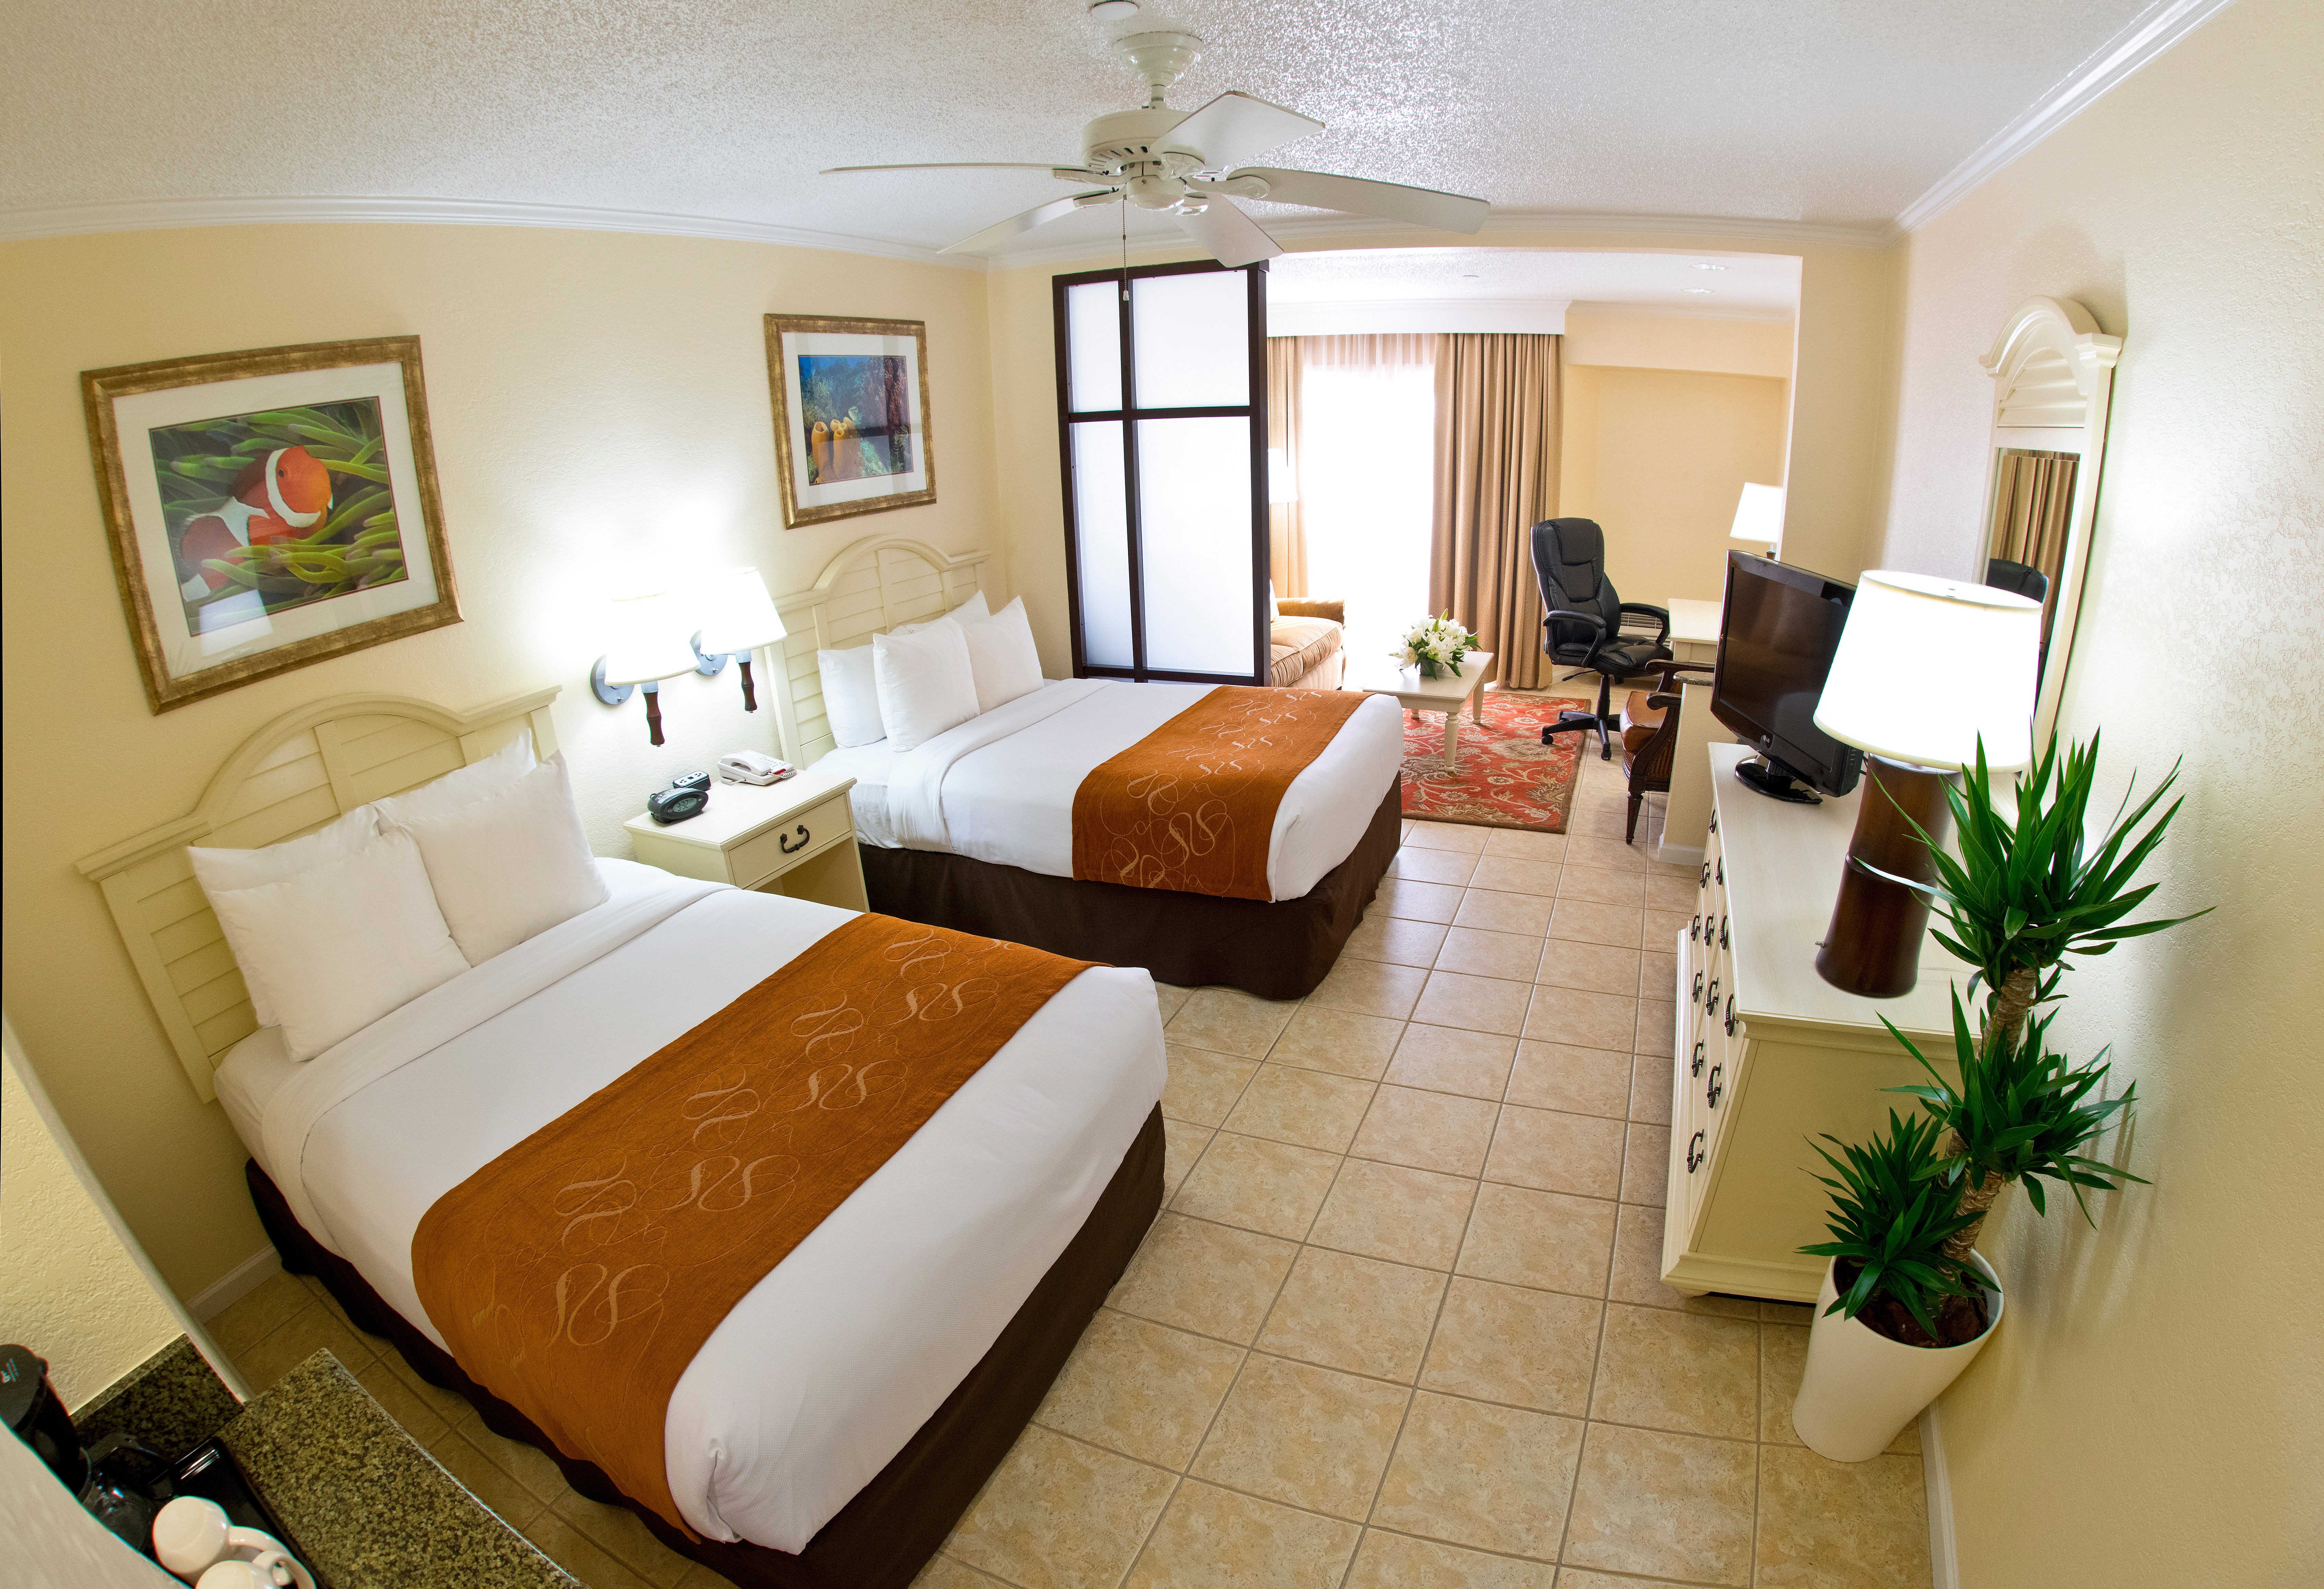 Comfort Suites Paradise Island is an all-suite hotel with free WiFi, room to spread out, and complimentary access to The Atlantis. Photo credit: Nassau Paradise Island Promotion Board